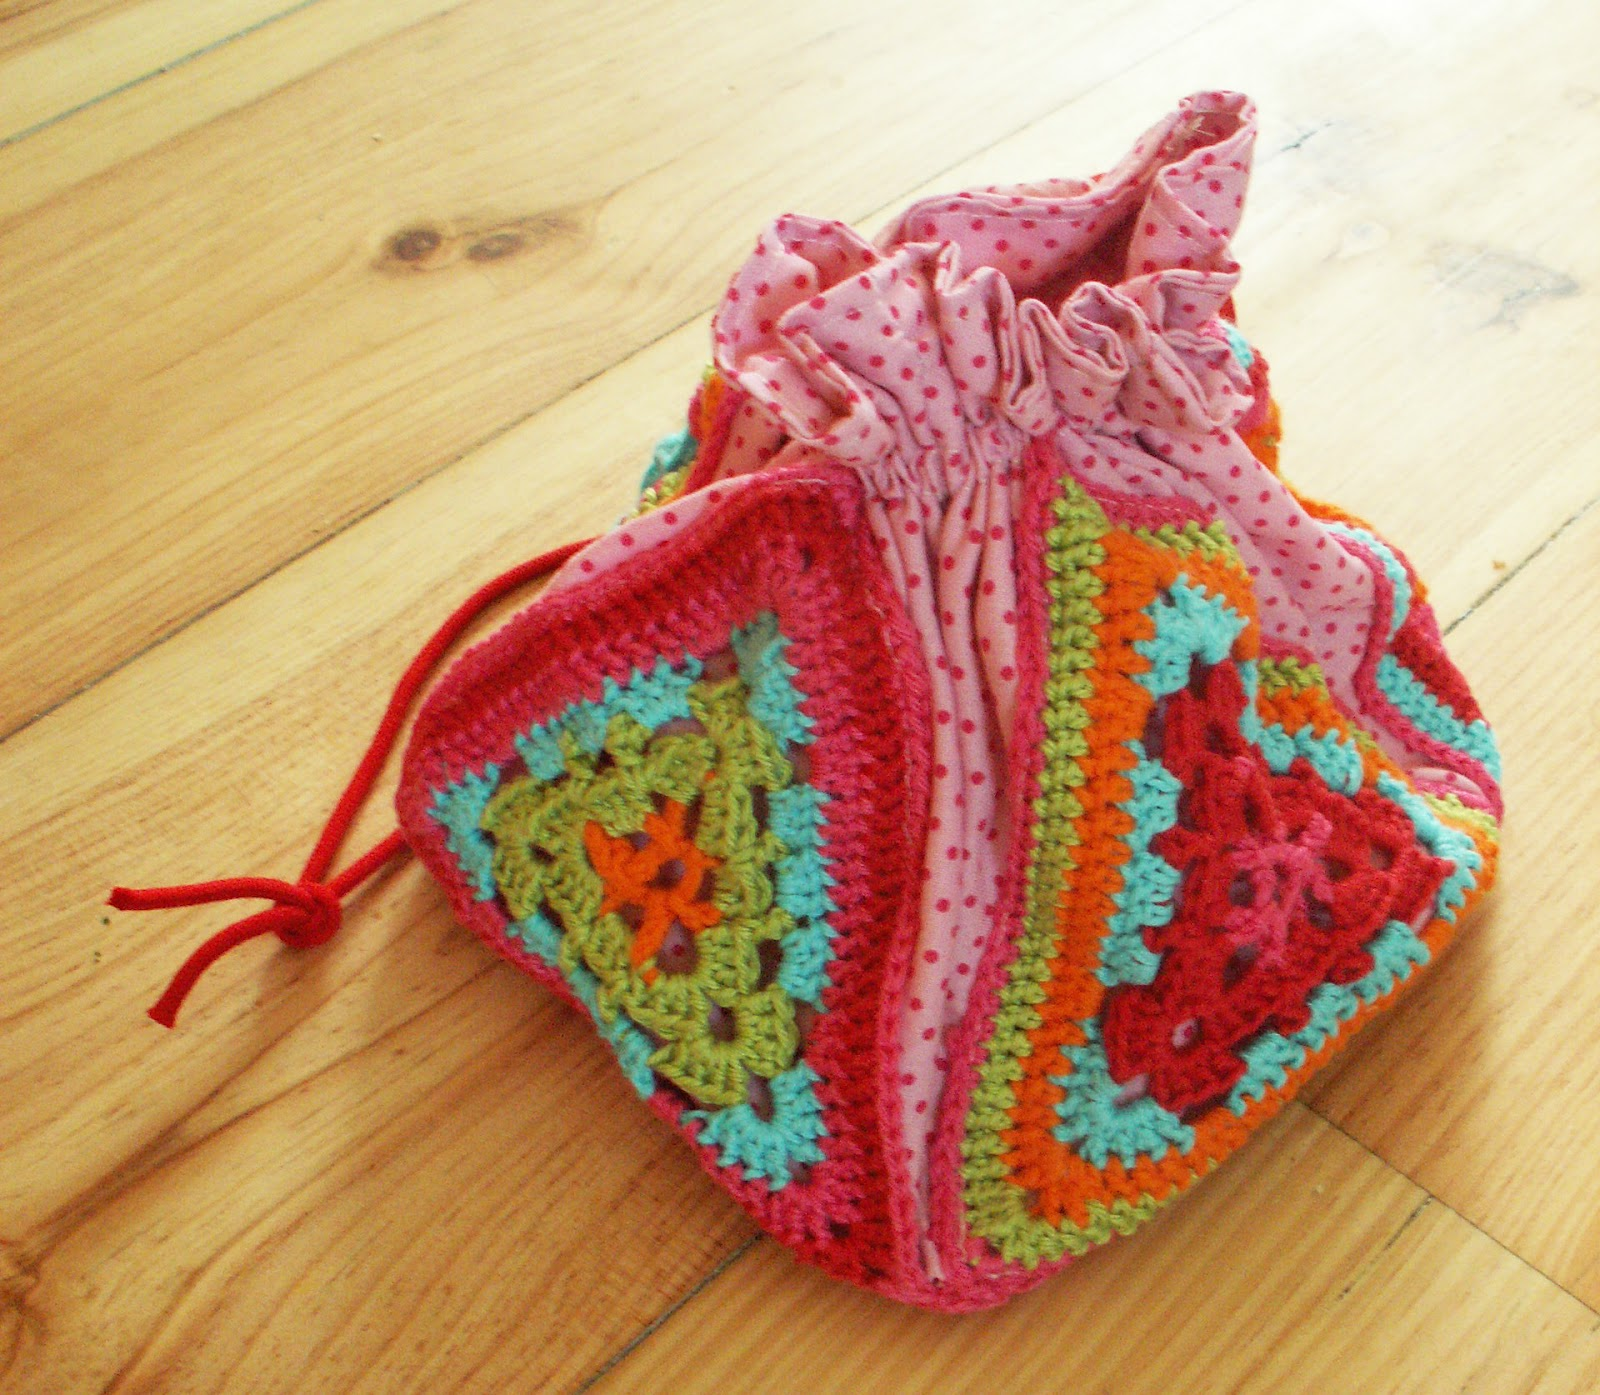 Howling at the moon: Crochet Bag